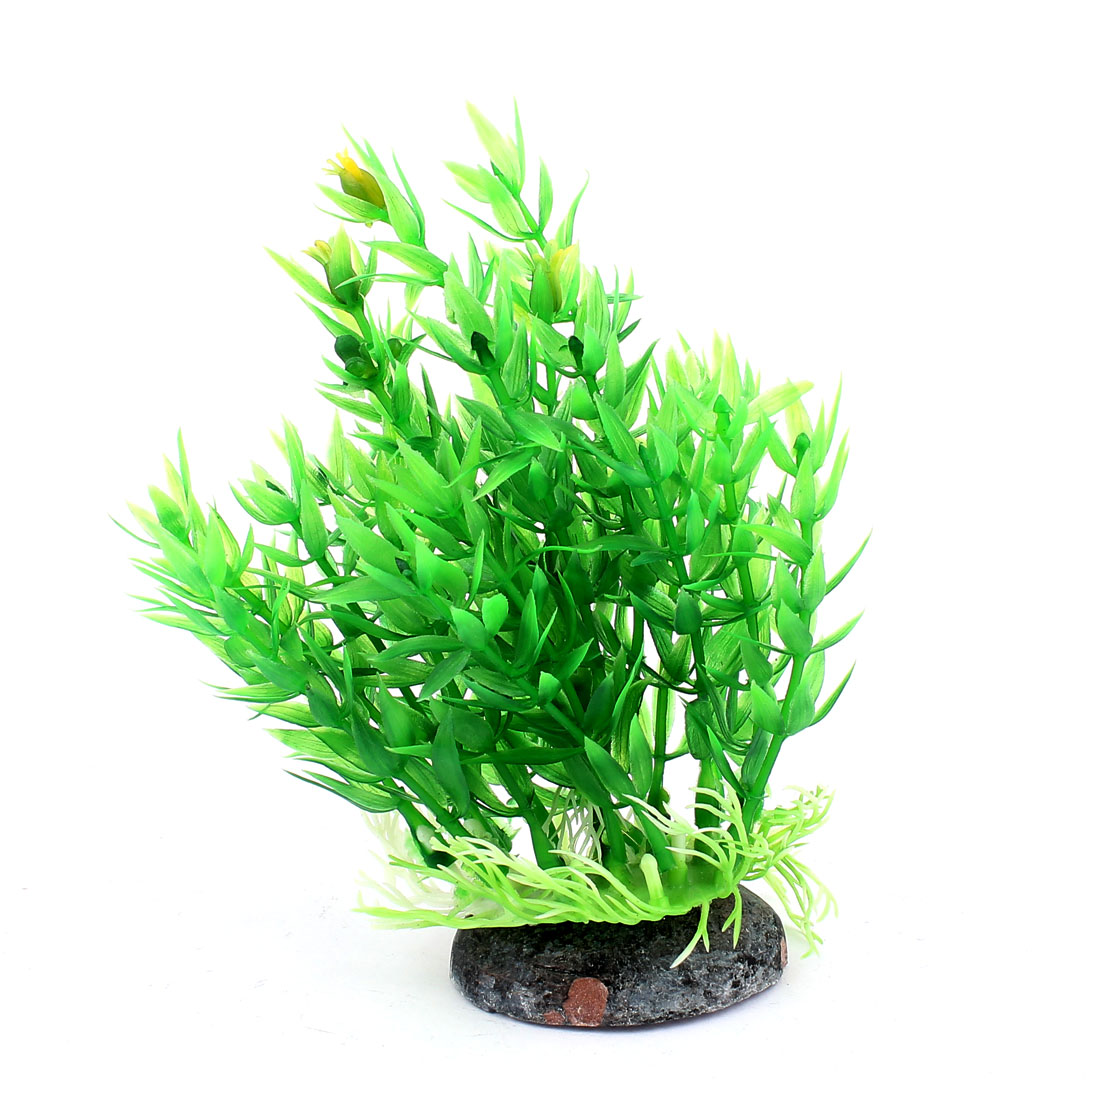 Green Plastic Ceramic Base Aquarium Plant Aquatic Grass Decor for Fishbowl Fish Tank